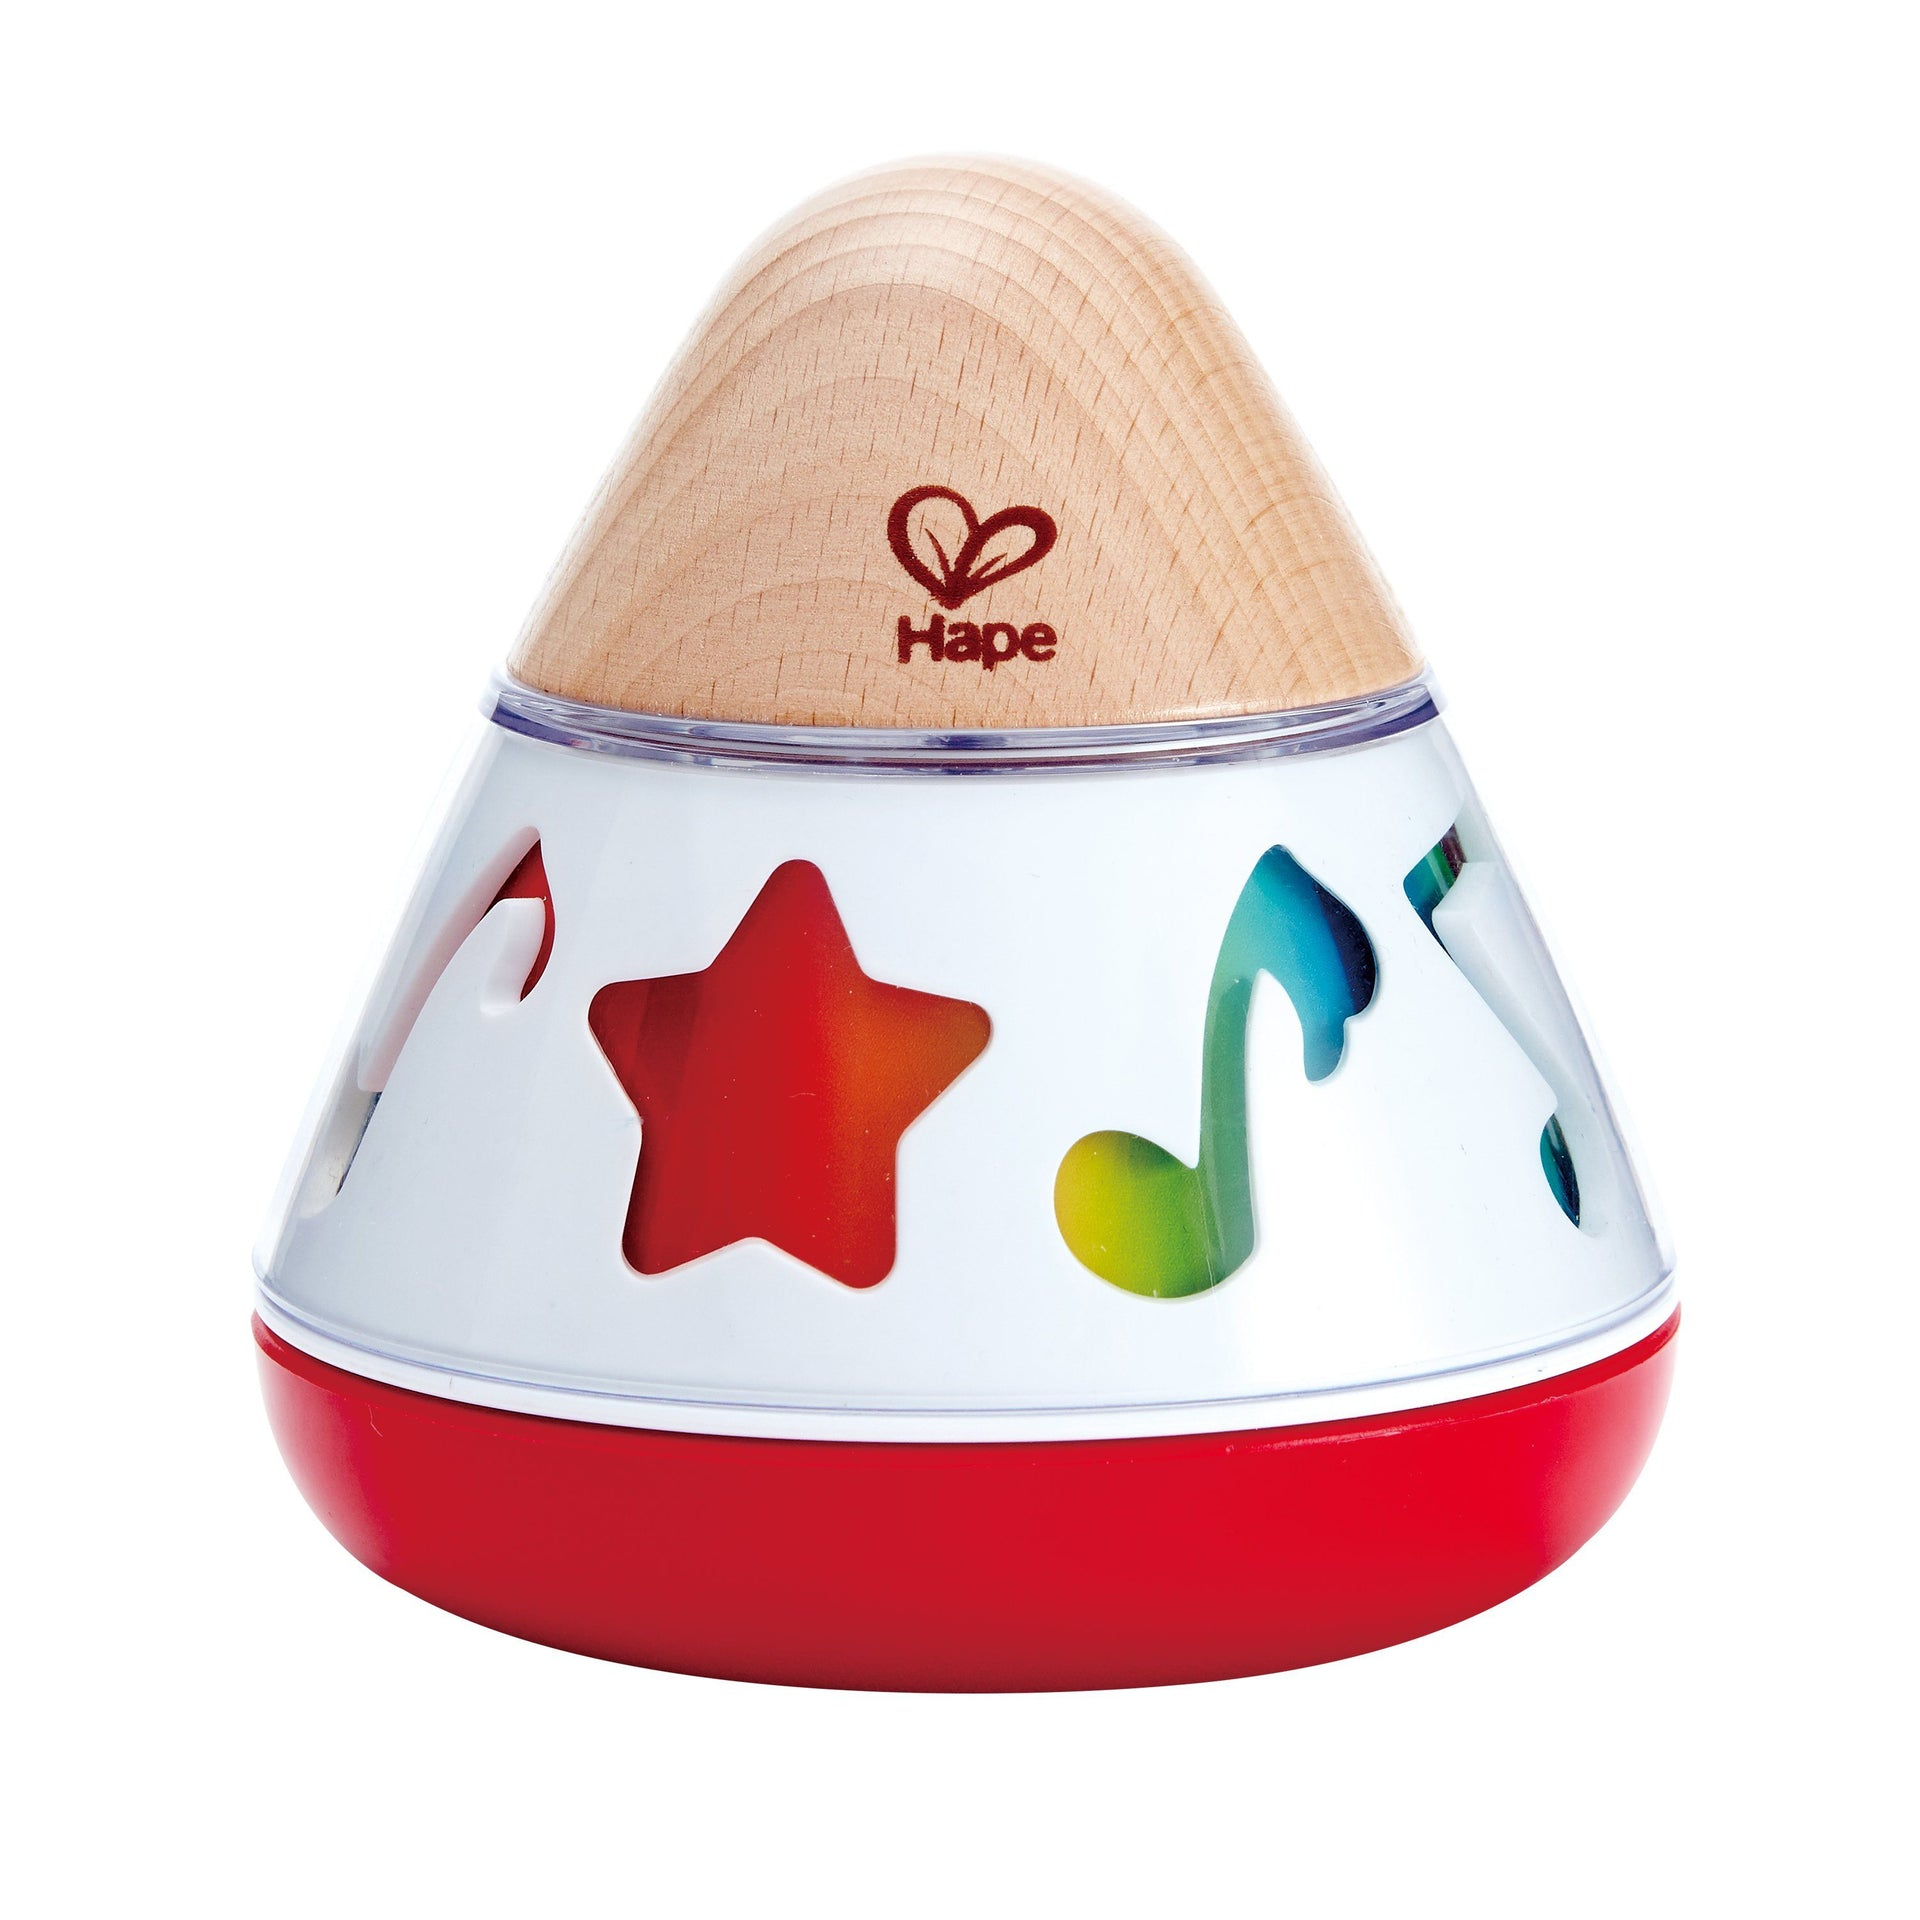 Hape Rotating Music Box Baby Toy - WoodenToys.com